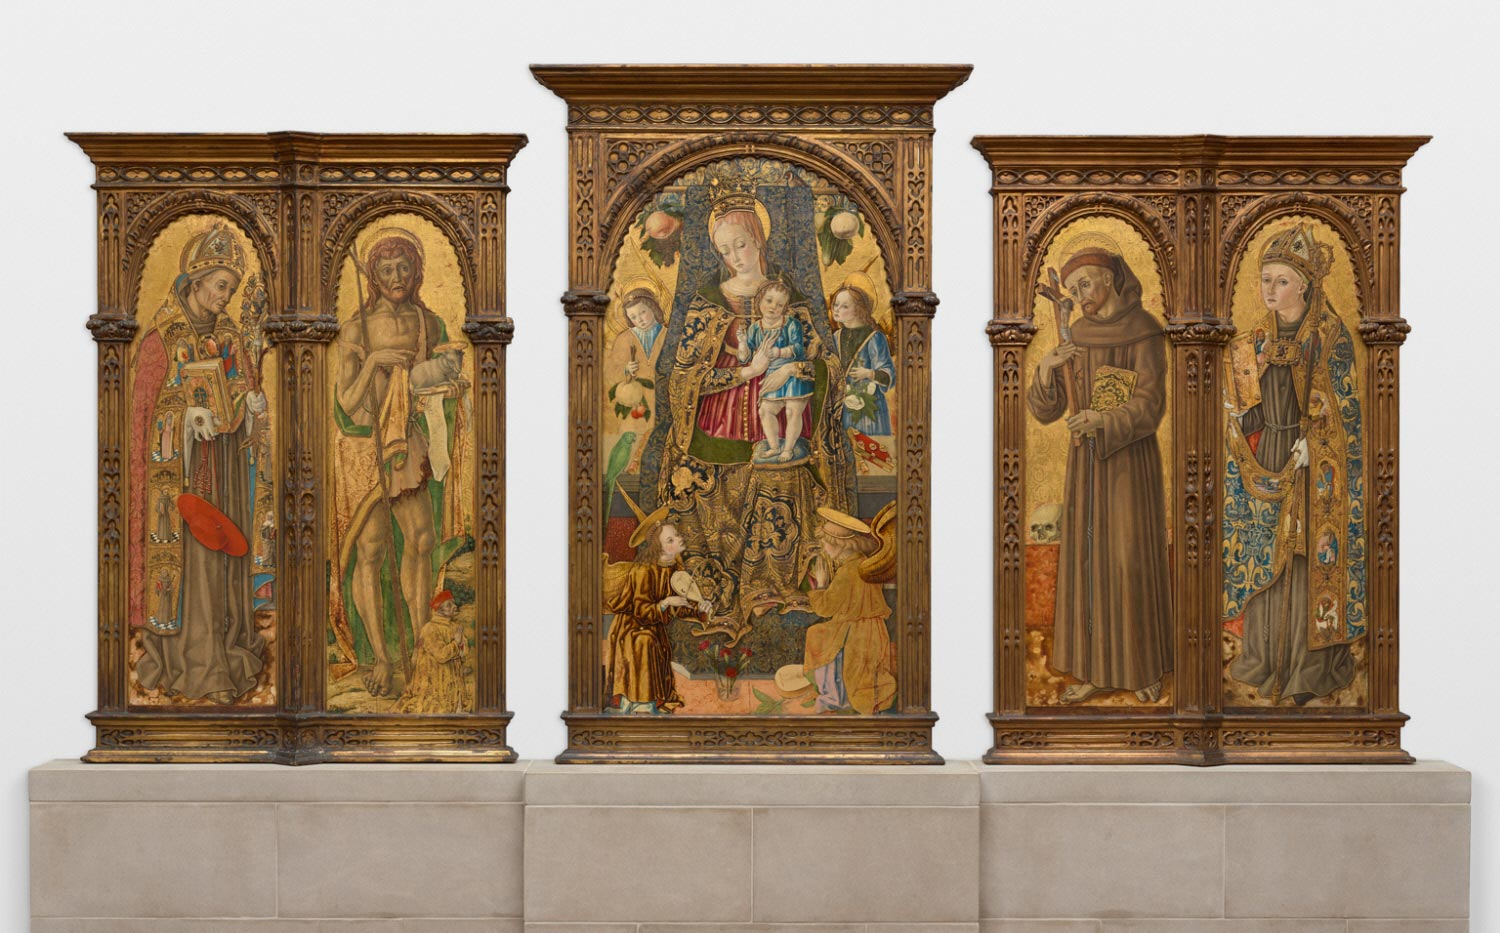 Saint Bonaventure and Saint John the Baptist with Ludovico Euffreducci; Enthroned Virgin and Child with Angels; Saint Francis of Assisi and Saint Louis of Toulouse